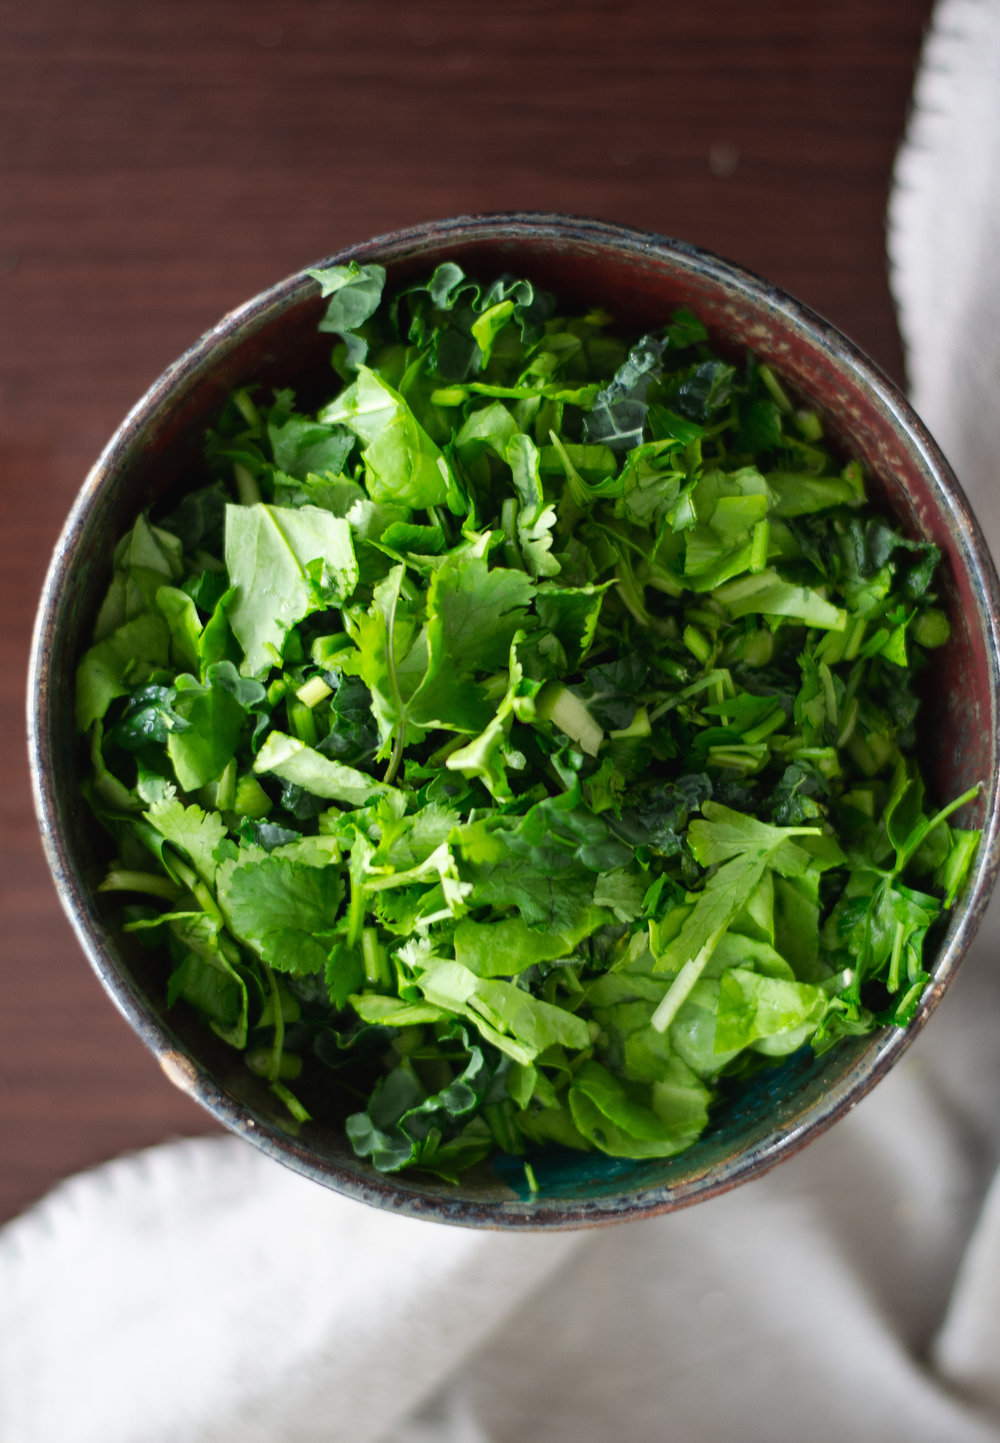 When I'm looking to add more greens to my soup, I will start with a bowl of raw chopped mixed greens (usually kale, spinach, parsley, and cilantro), pour the hot soup over the top, and let the heat gently wilt my greens. Voila a delicious, greens filled soup.  ©Elena Hollenhorst